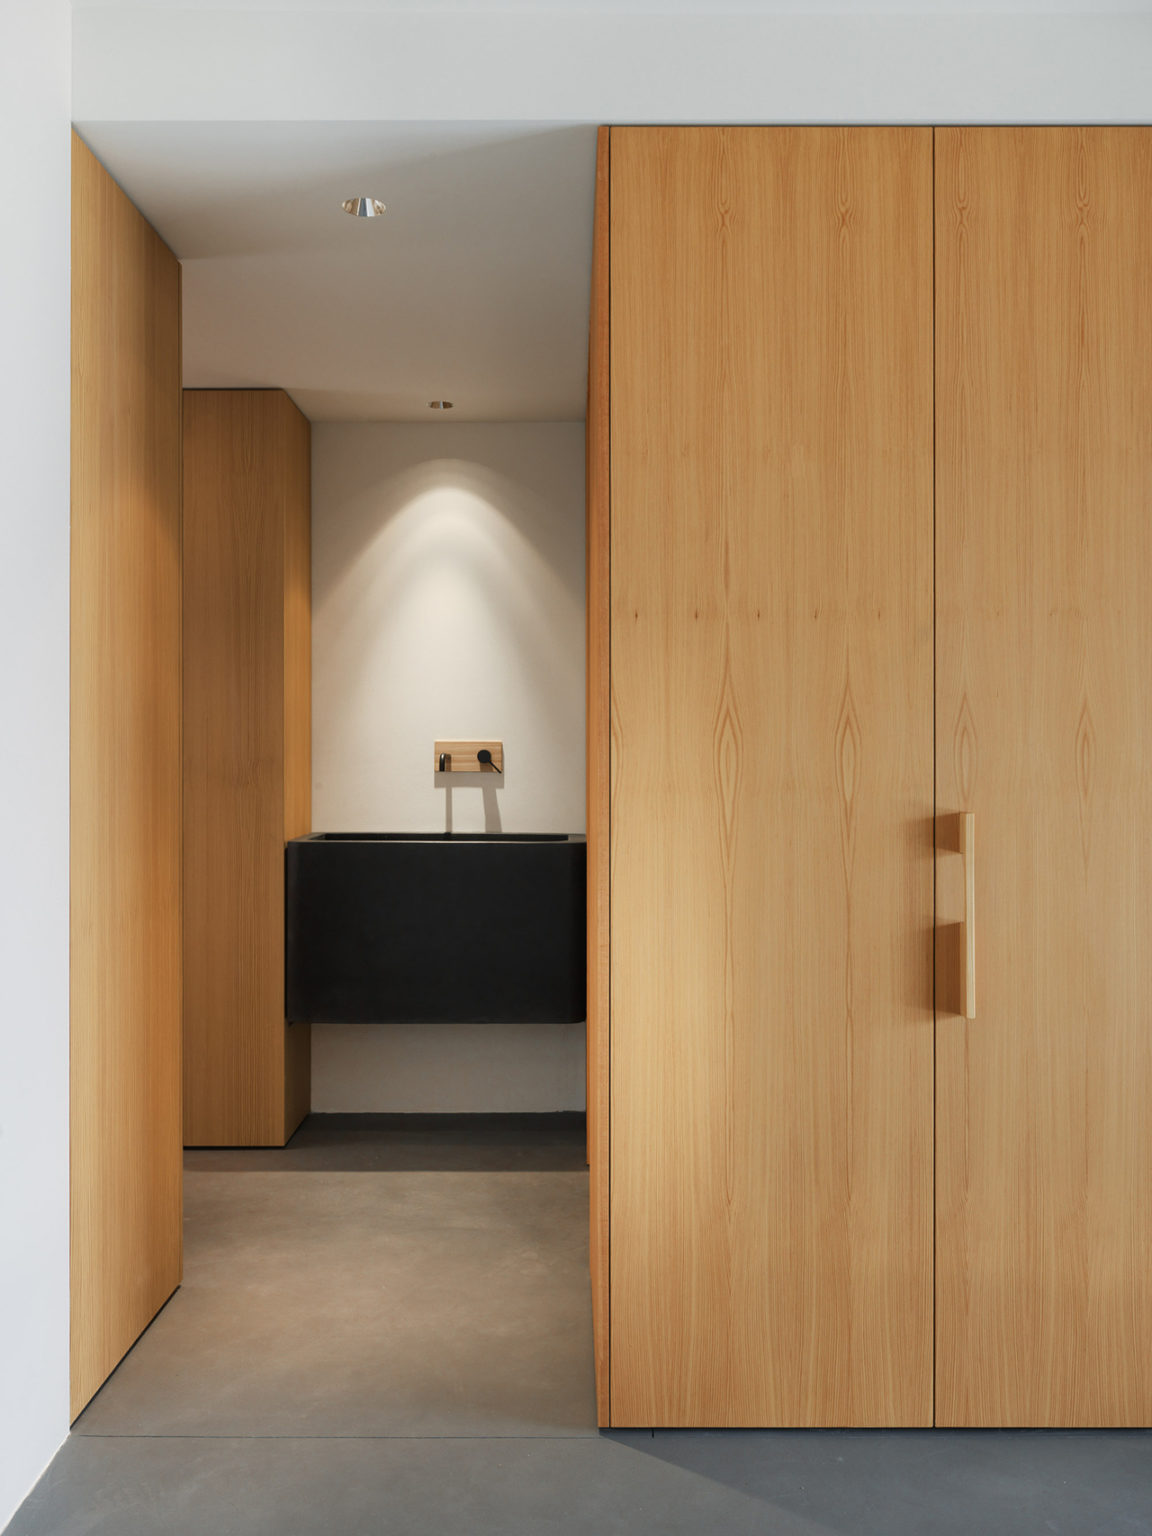 Storage is comfortable and hidden, to avoid cluttering the minimal spaces